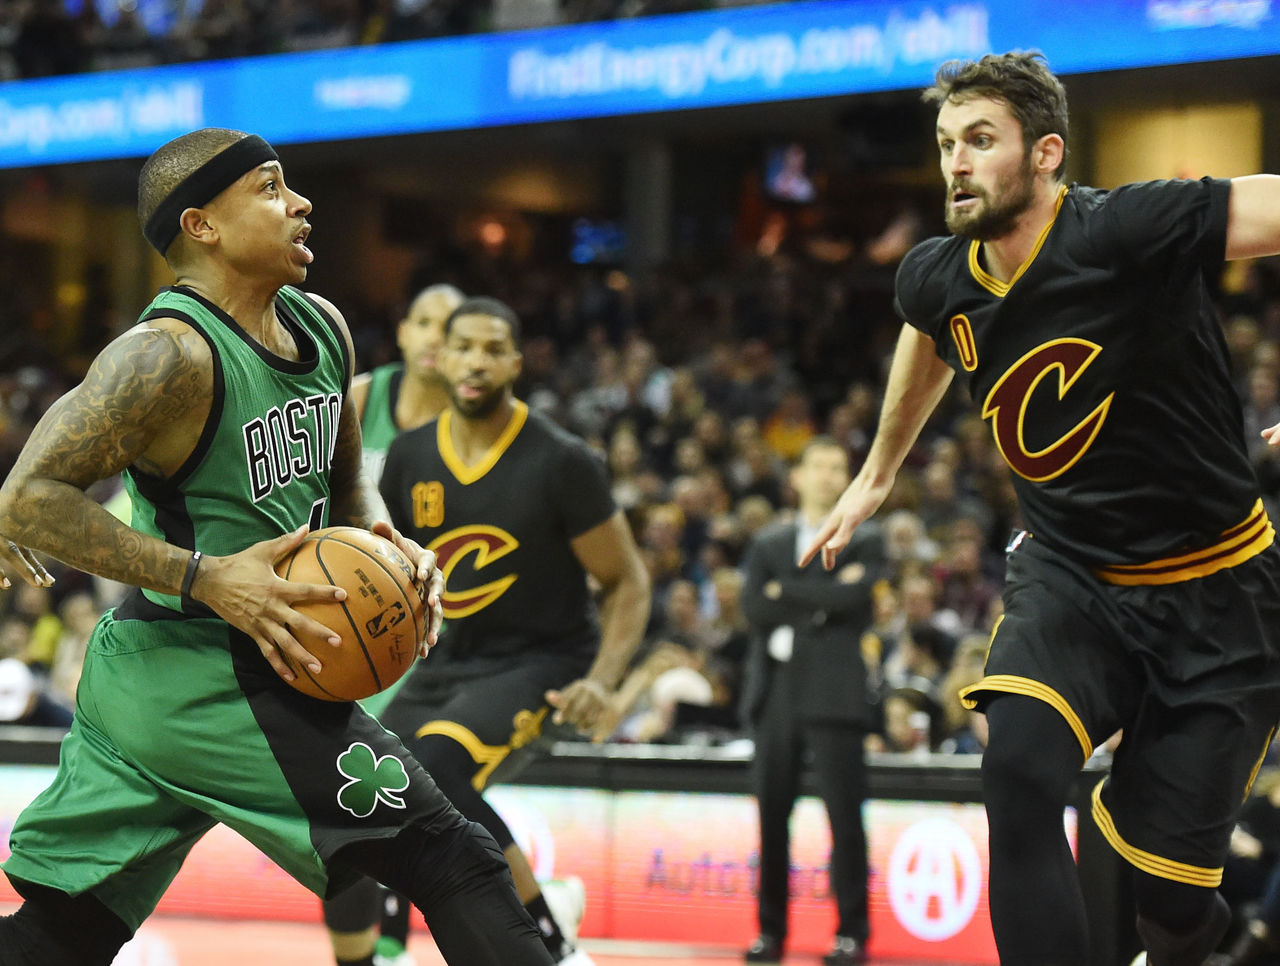 Cropped 2016 12 30t042654z 2085467286 nocid rtrmadp 3 nba boston celtics at cleveland cavaliers